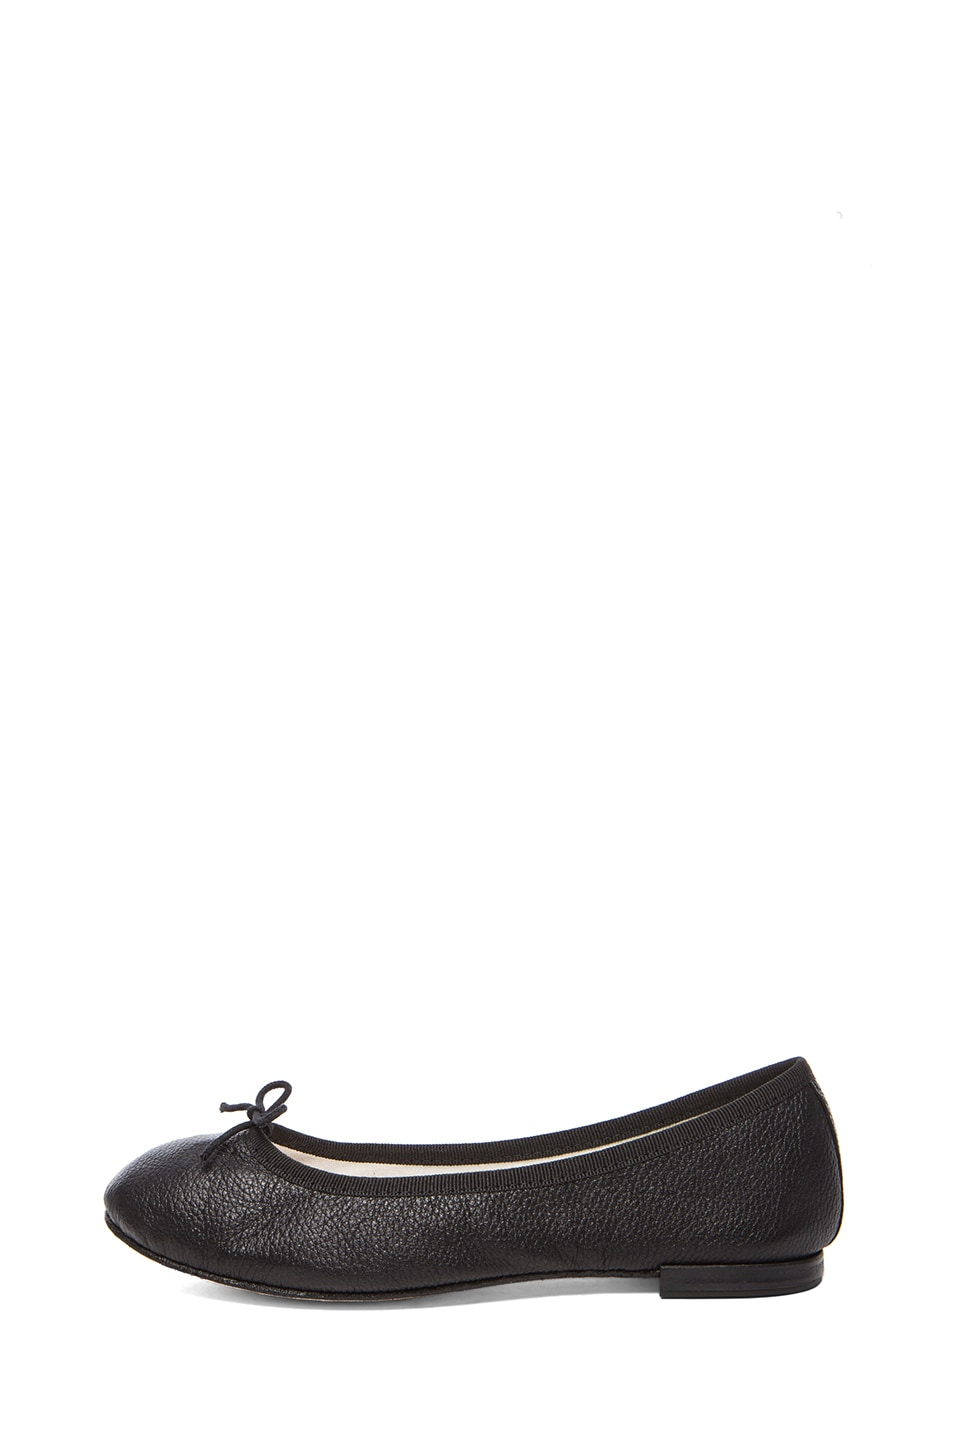 Image 1 of Repetto Goatskin Leather Flats in Black